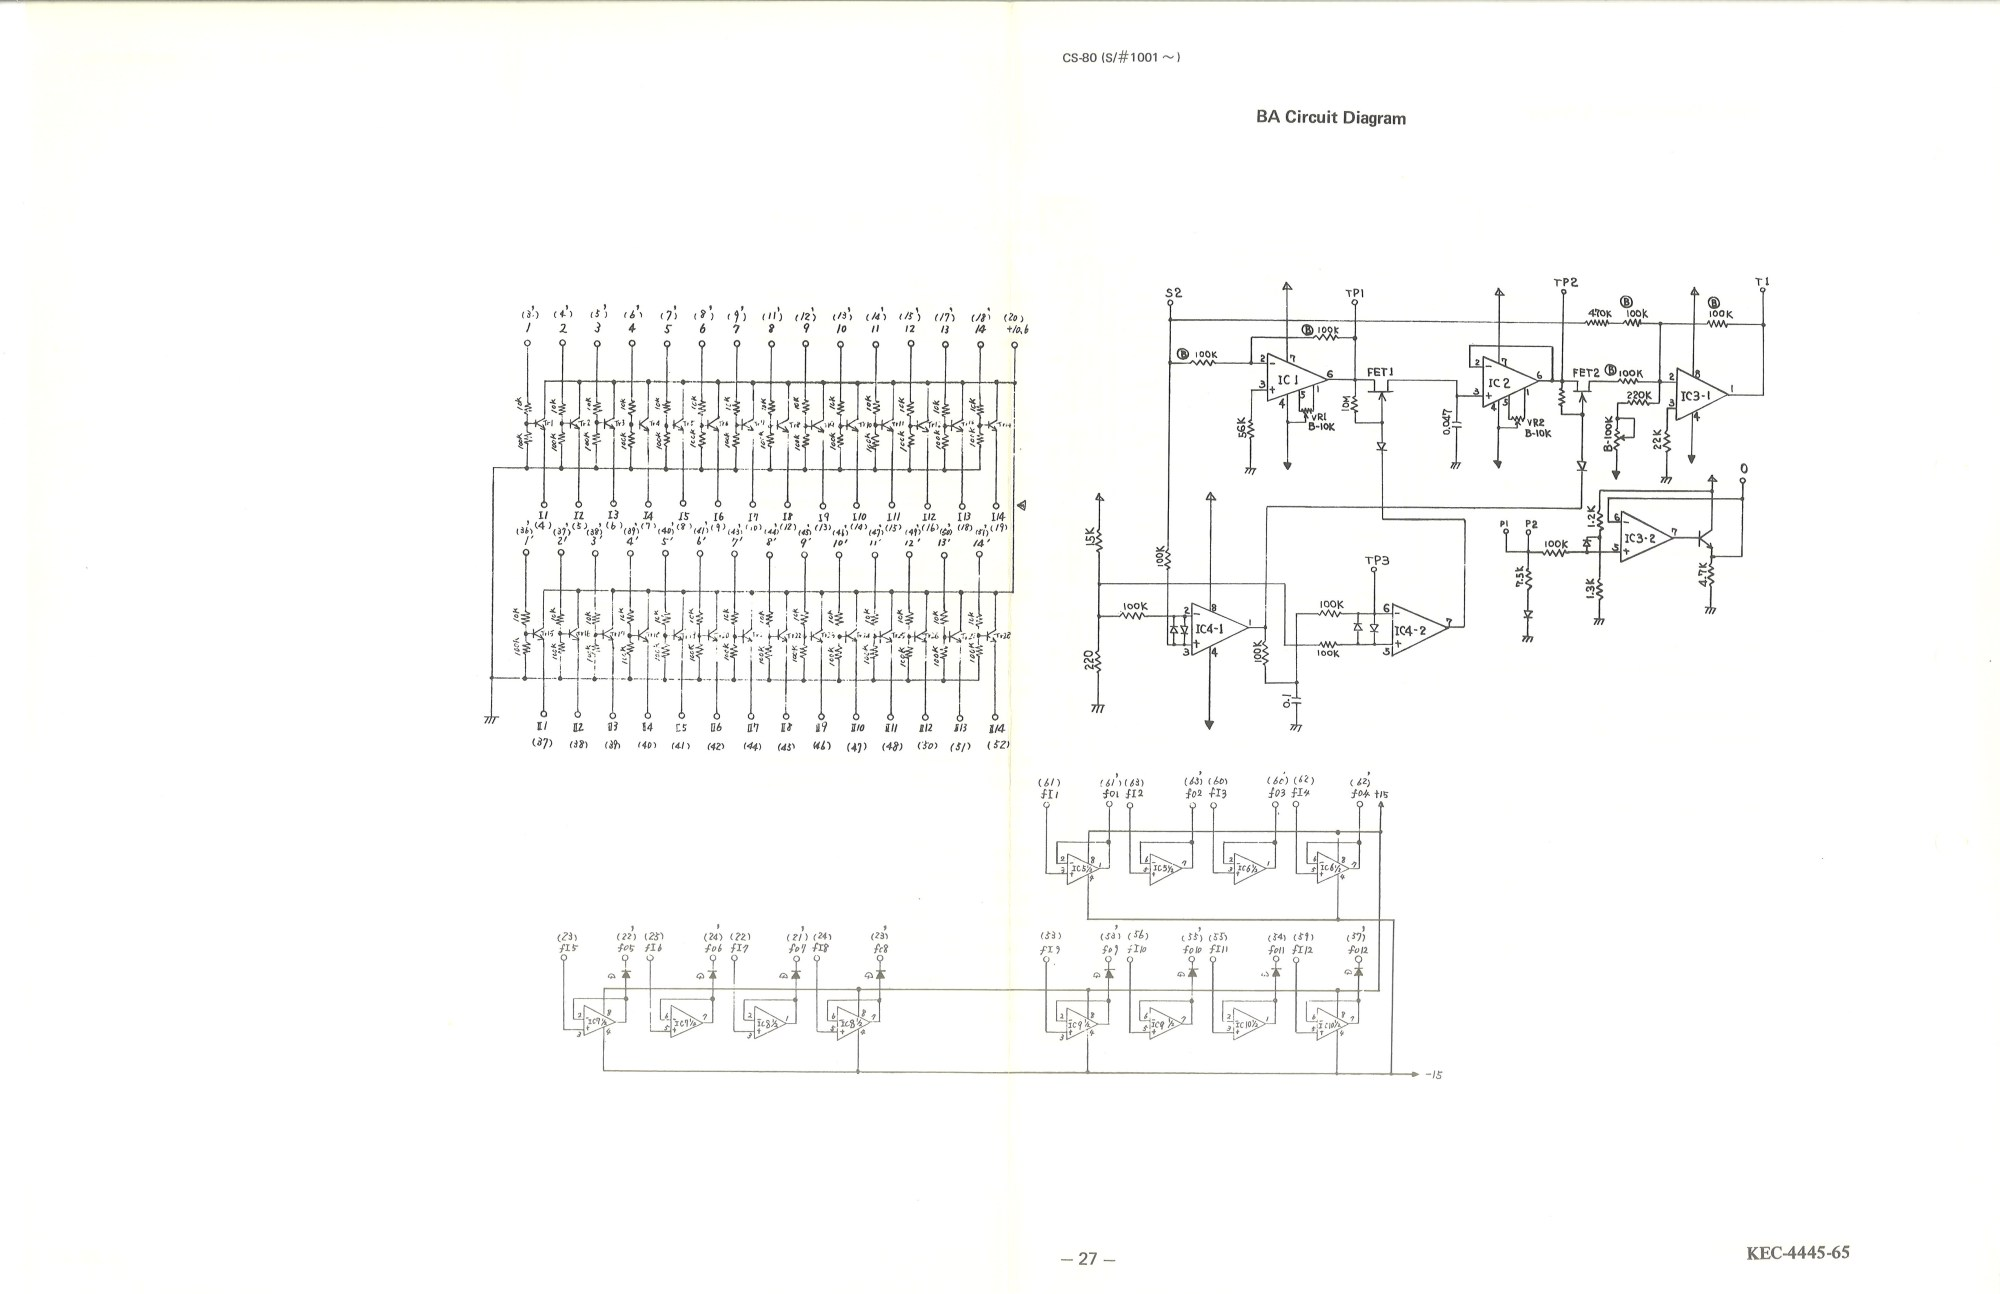 hight resolution of yamaha f8 wiring diagram wiring diagramyamaha cs 80 service manual27 ba circuit diagram